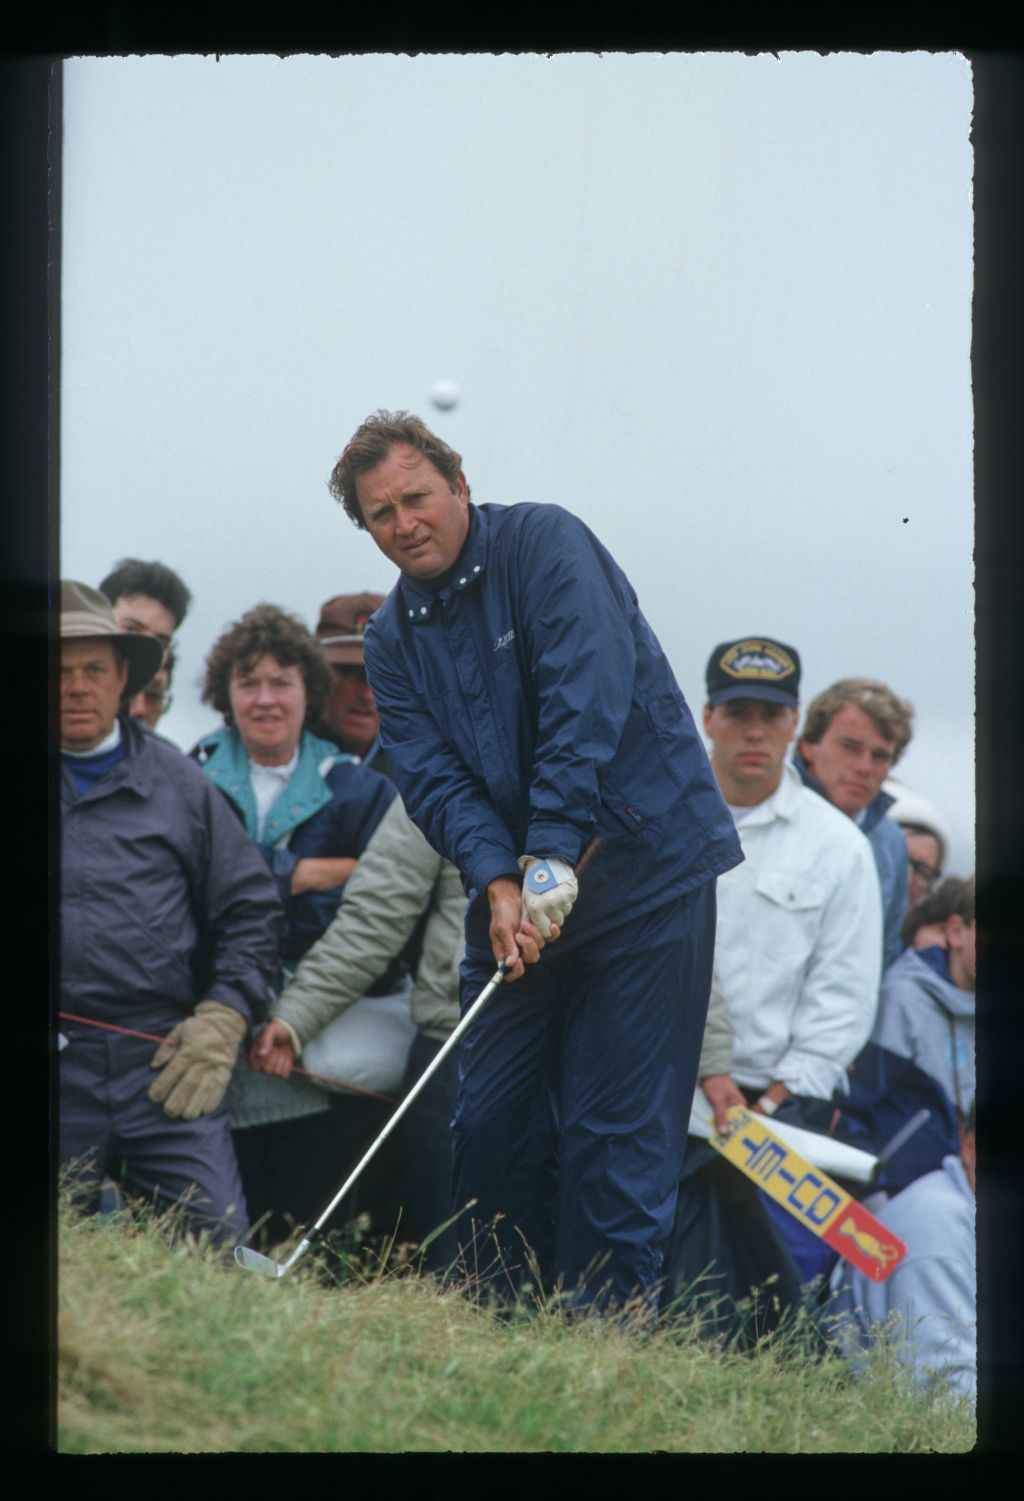 American golfer Ray Floyd plays from the rough in rainy weather at the 1987 Open Championship at Muirfield